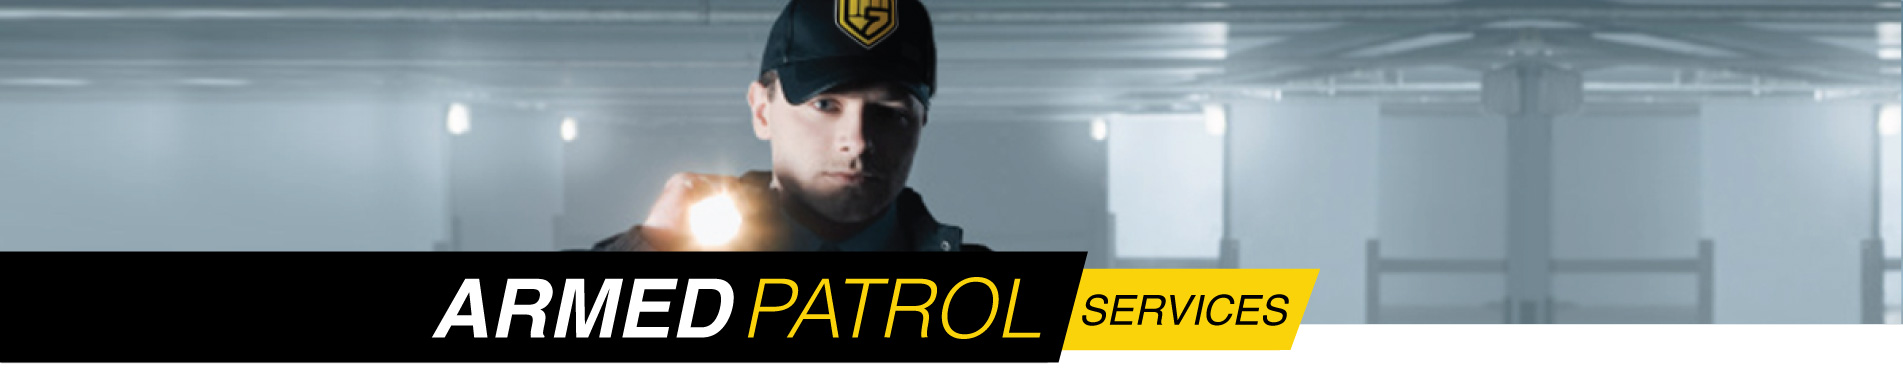 Houston area armed patrol services